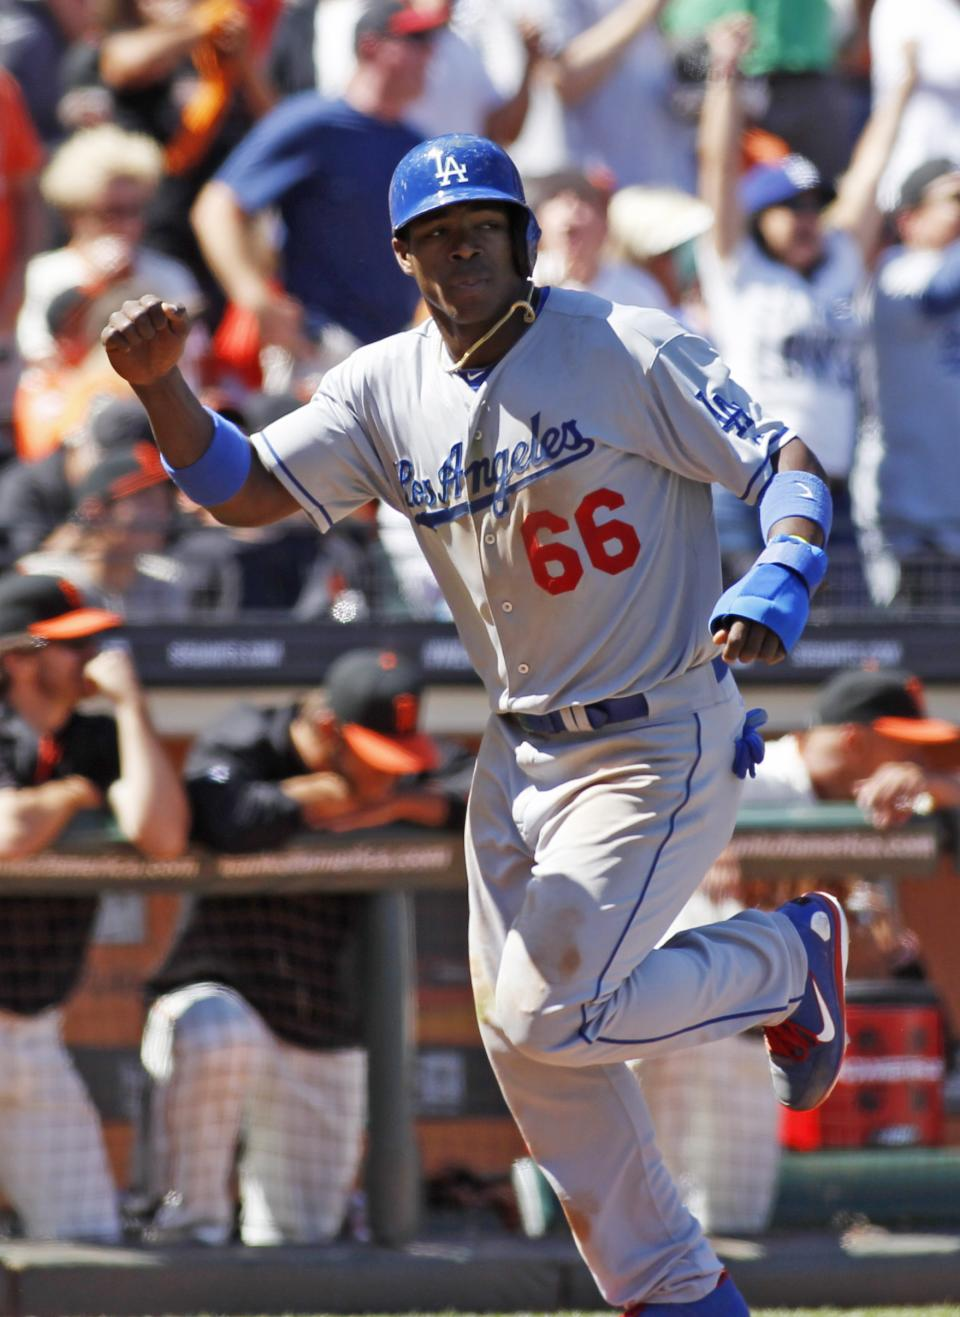 Los Angeles Dodgers' Yasiel Puig scores on an A.J. Ellis double against the San Francisco Giants during the ninth inning of a baseball game in San Francisco, Sunday, July 7, 2013. (AP Photo/George Nikitin)